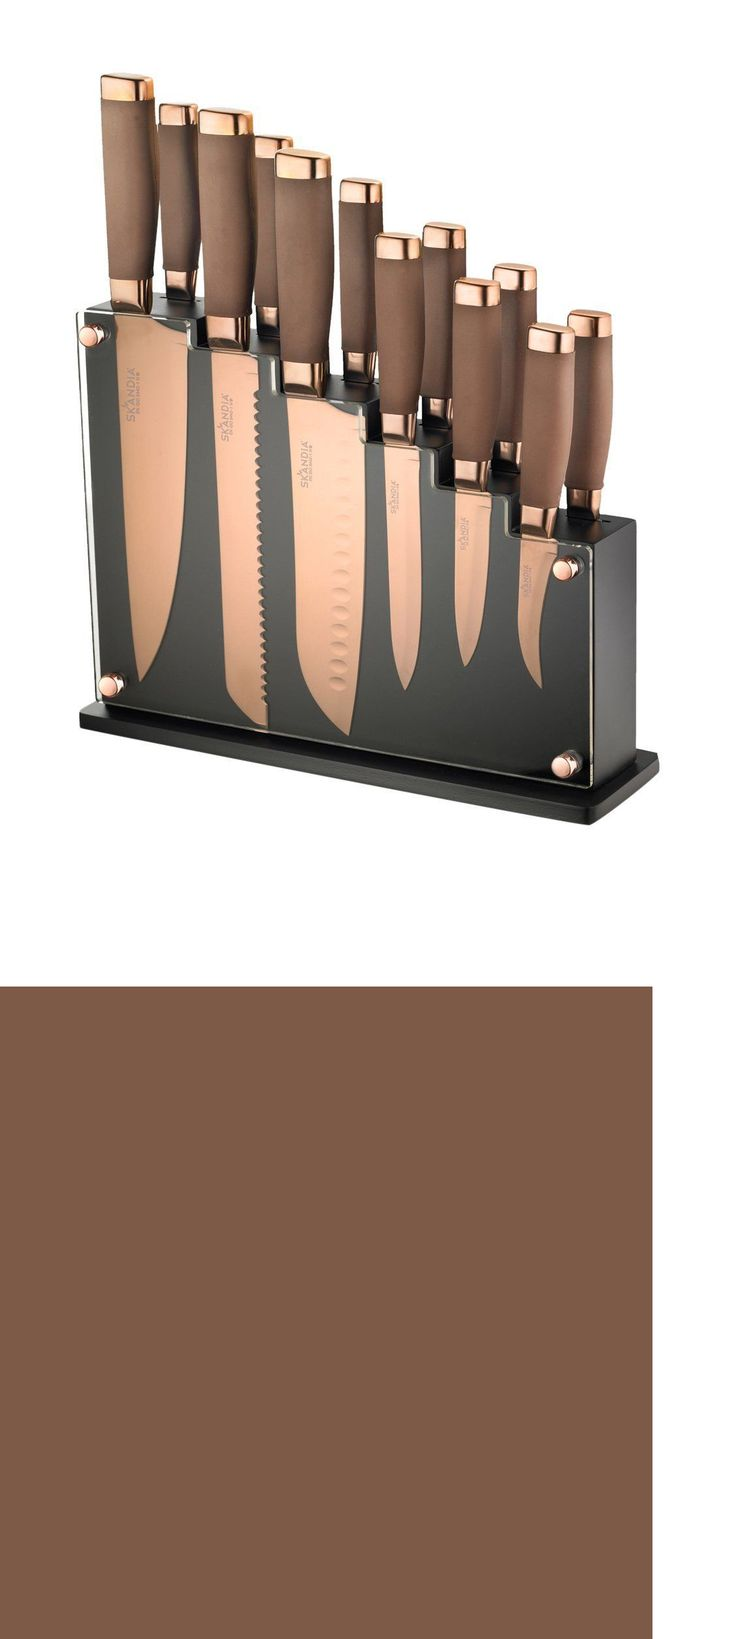 the 25 best professional chef knife set ideas on pinterest kitchen and steak knives 177005 new kitchen knife set block stainless steel professional chef knives